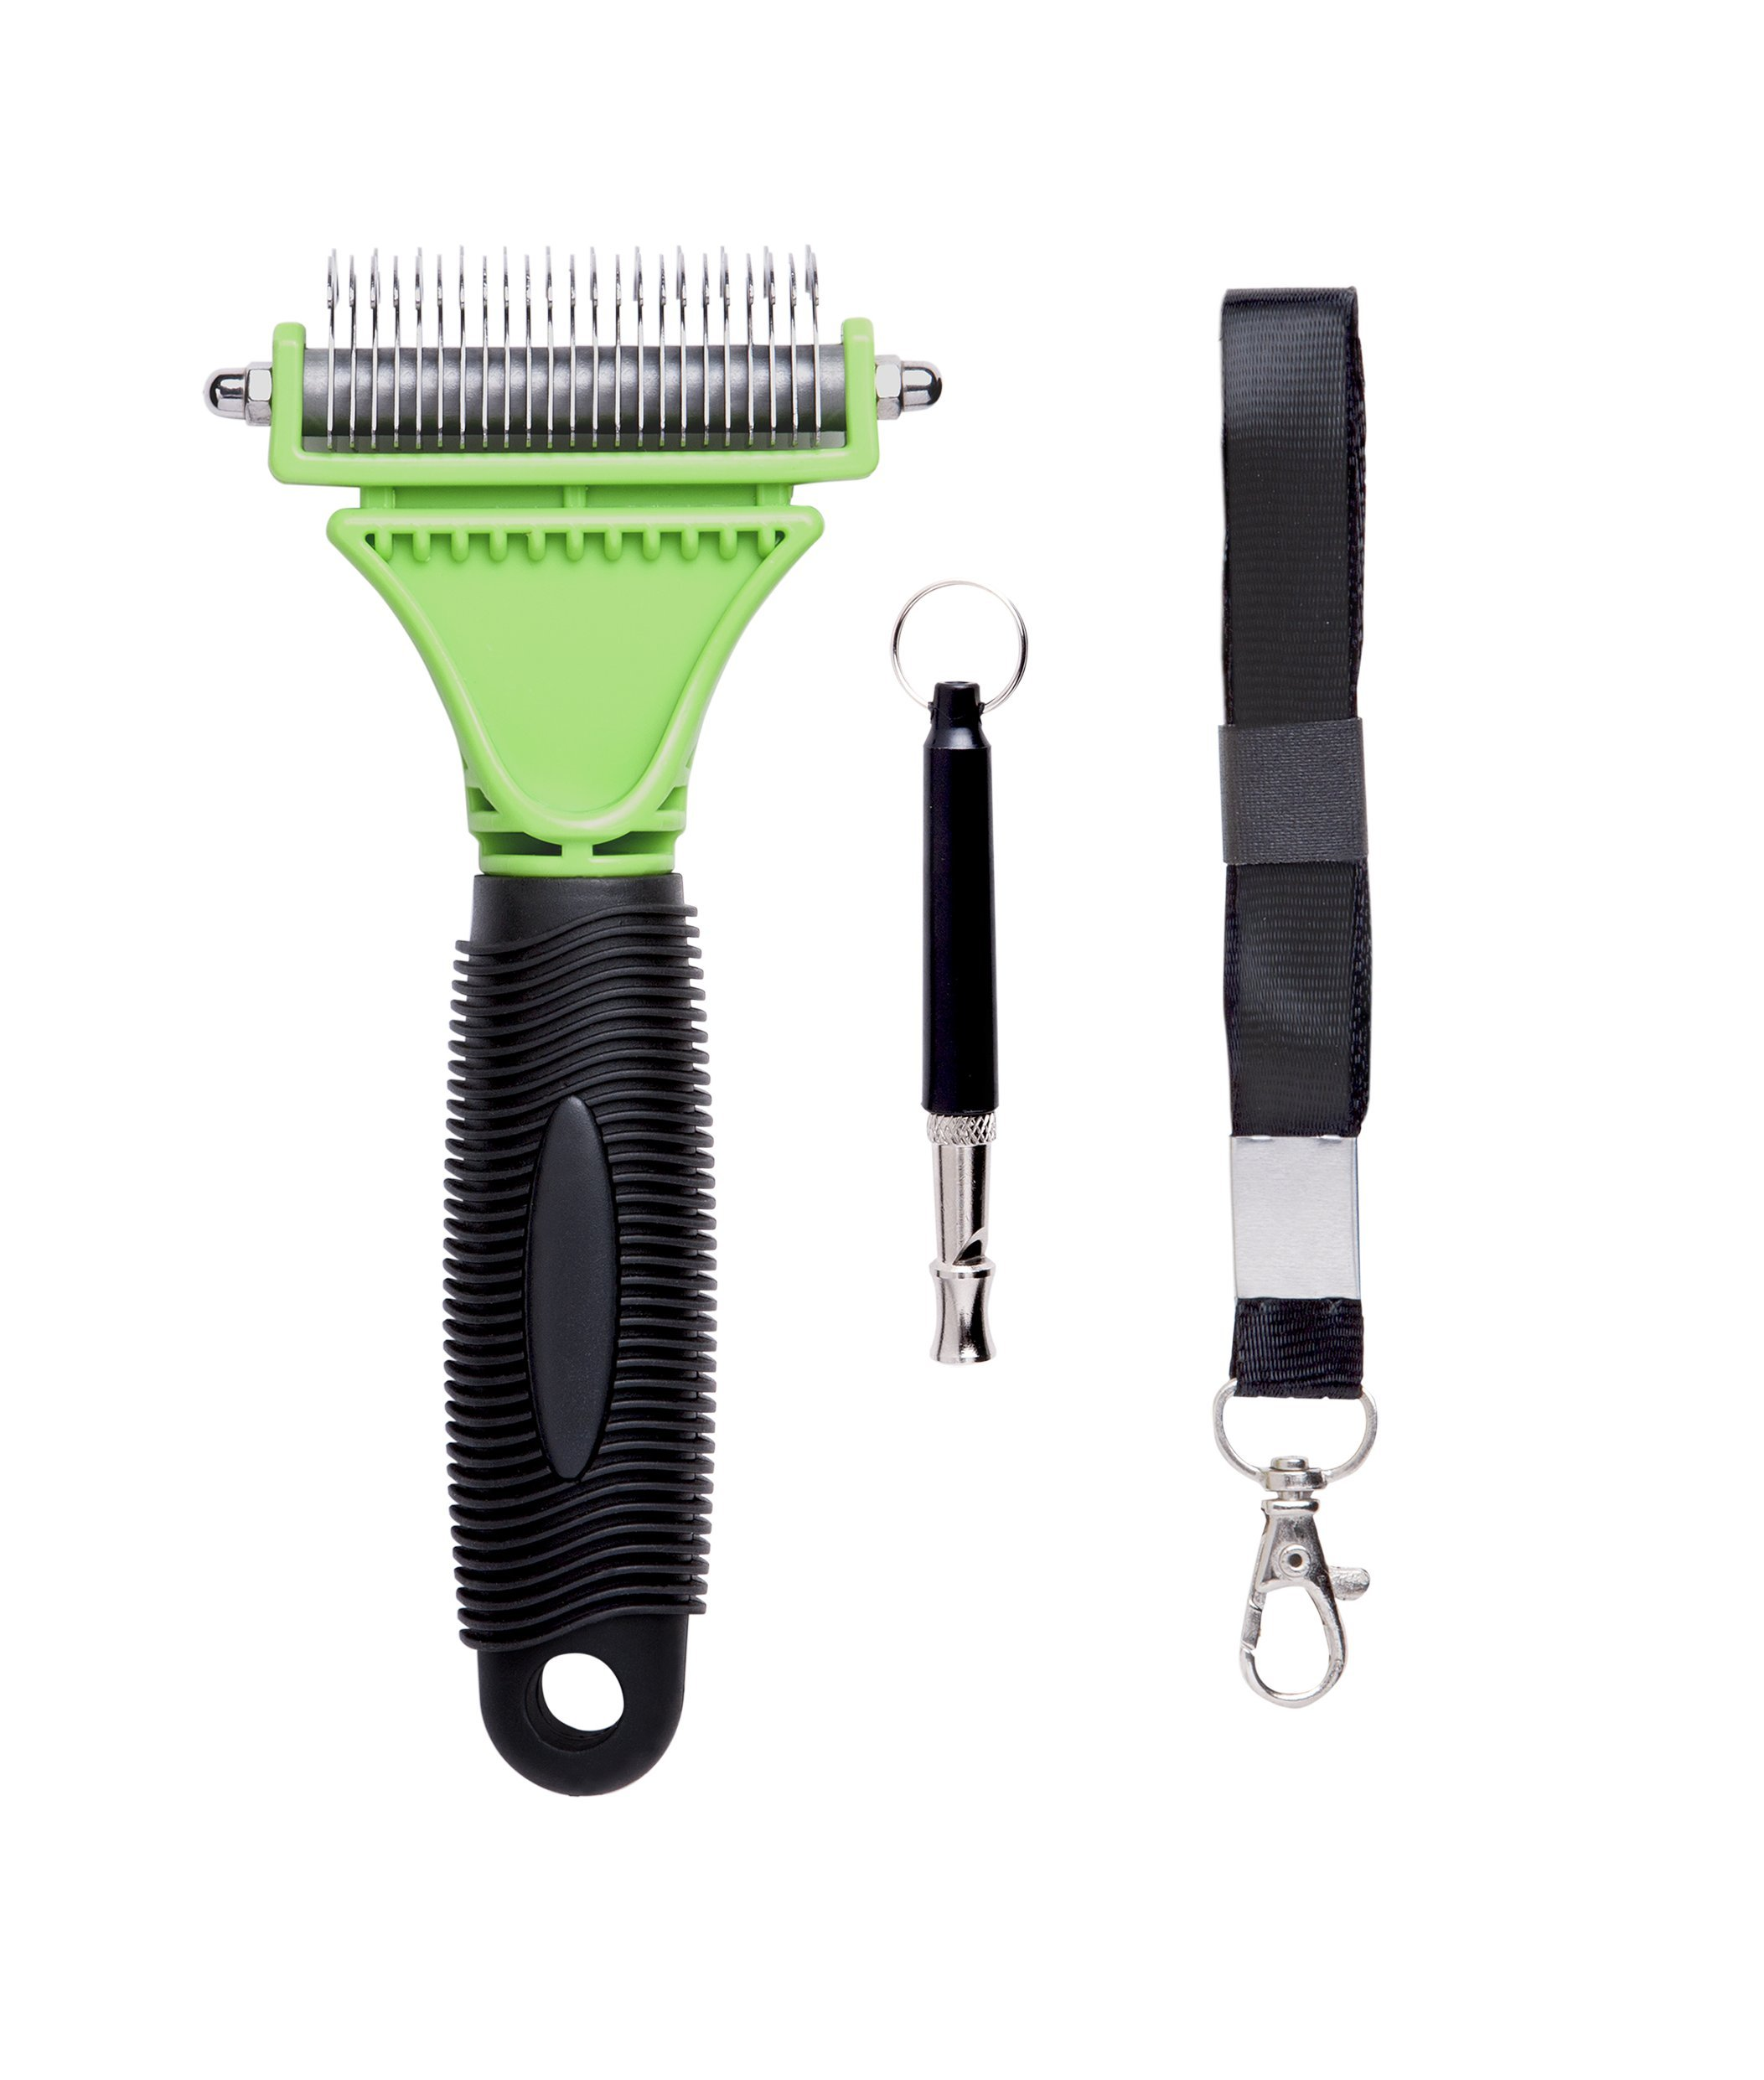 AwesomePets Dematting Comb Grooming Dog Whistle Set - Small Metal Rake Tool a Safety 2 Sided Teeth a Sensitive Skin Metal Training Whistles (Green + Dog Whistle)